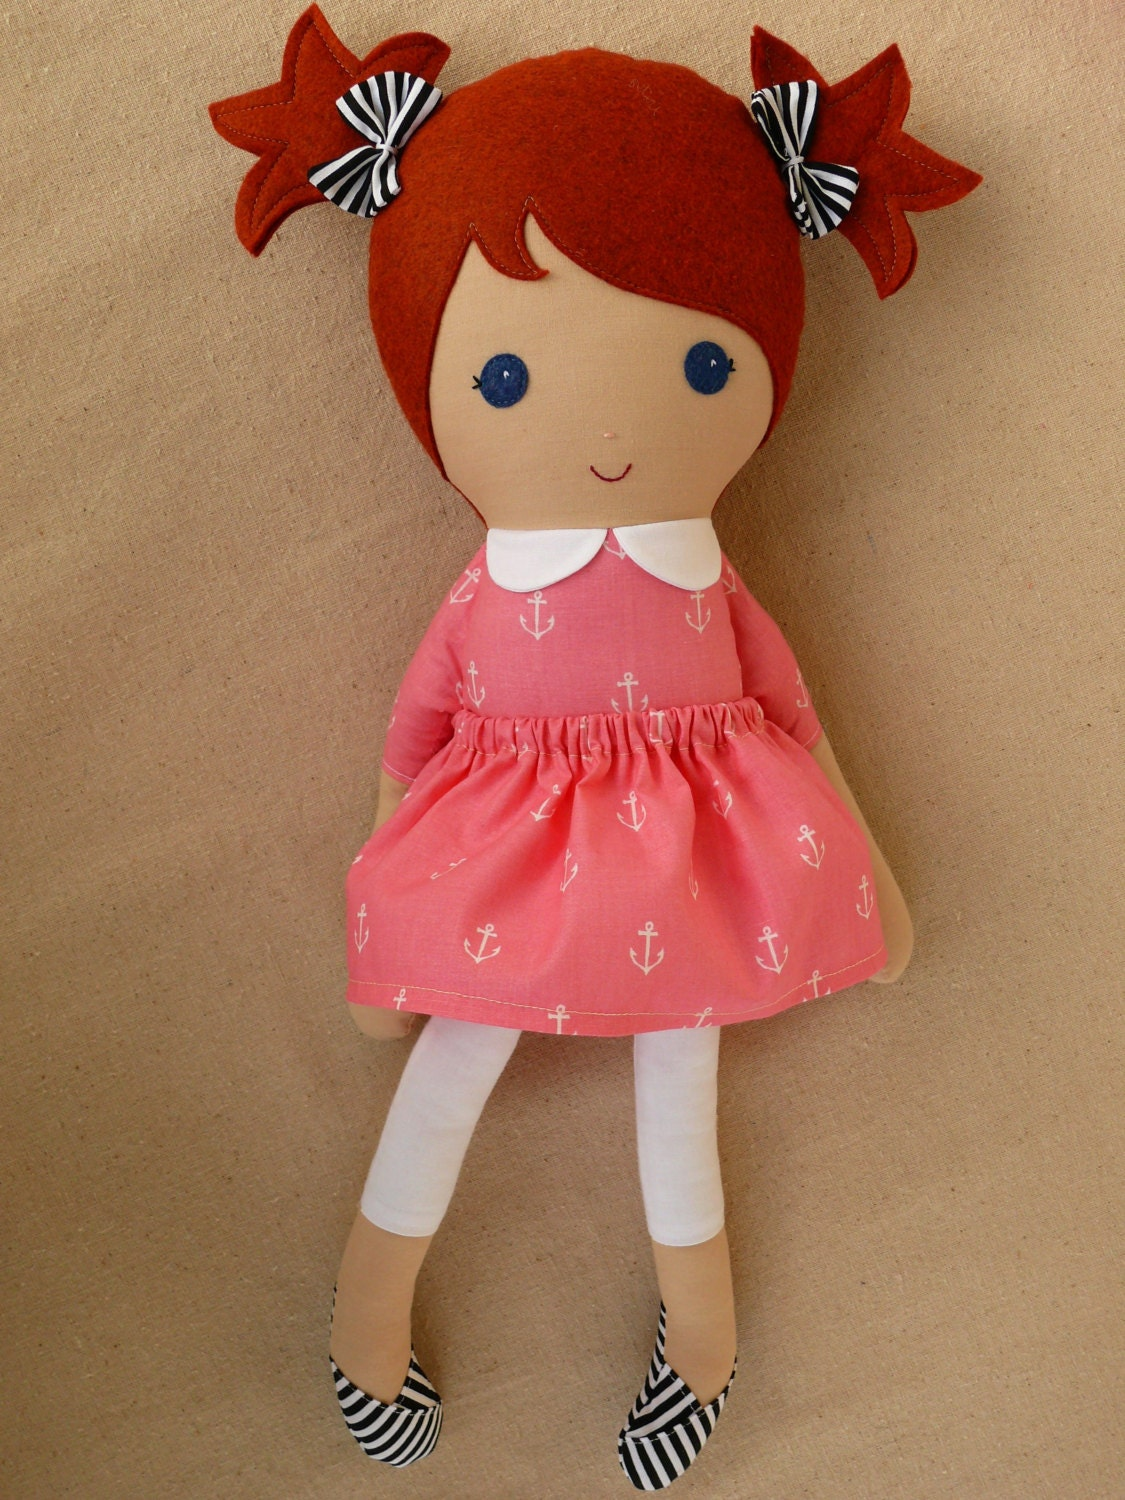 Reserved for Nikole Fabric Doll Rag Doll Red Haired Girl in